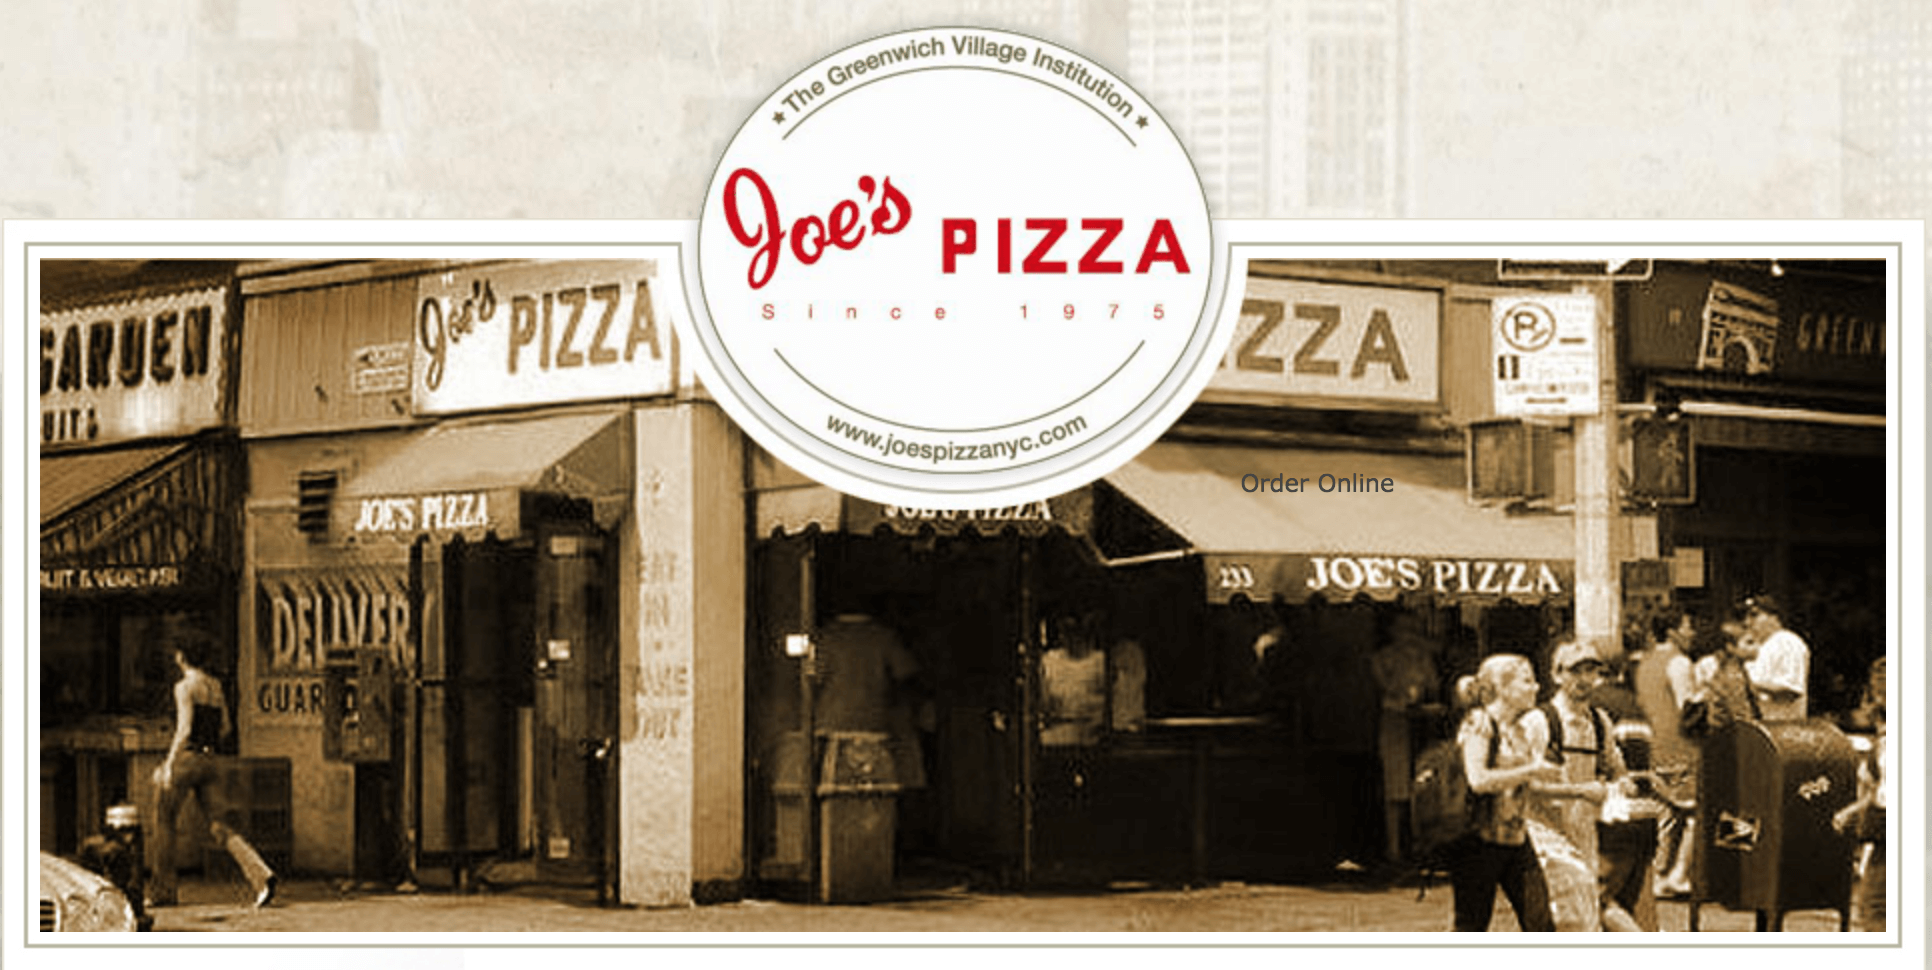 Dining Italian Restaurants in NYC Joes Pizza Façade